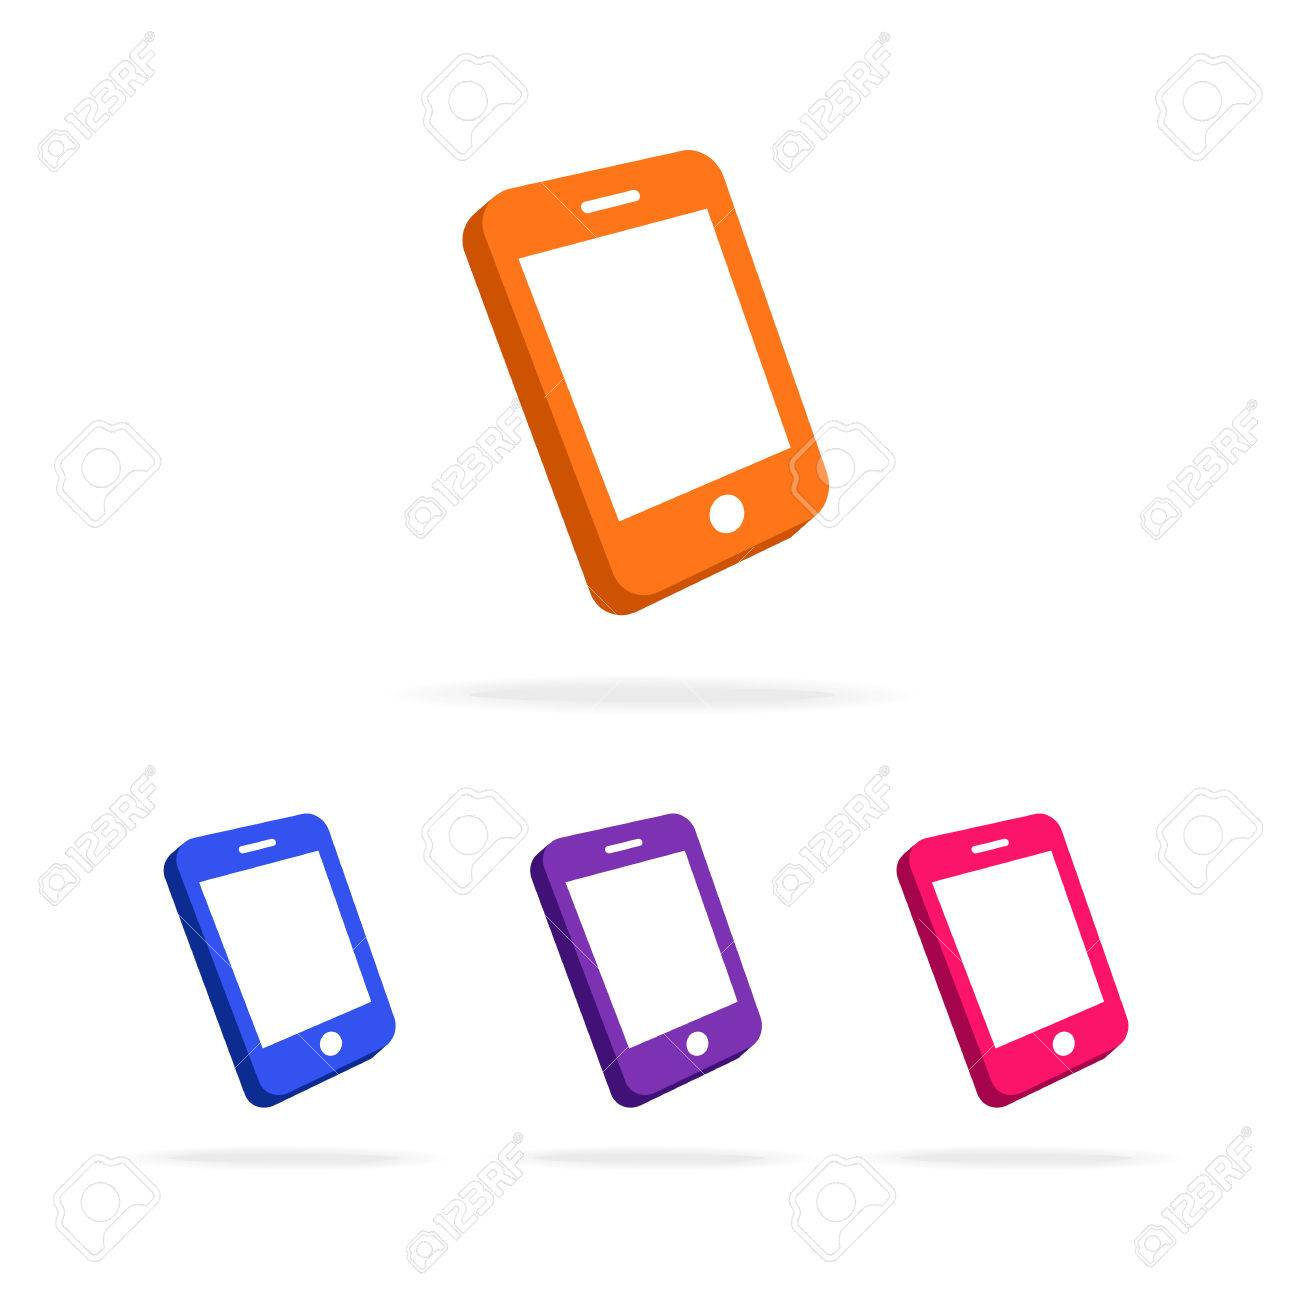 Phone logo set different color isolated on white background used phone logo set different color isolated on white background used for mobile shop mobile store phone service and repair perfect for your business card colourmoves